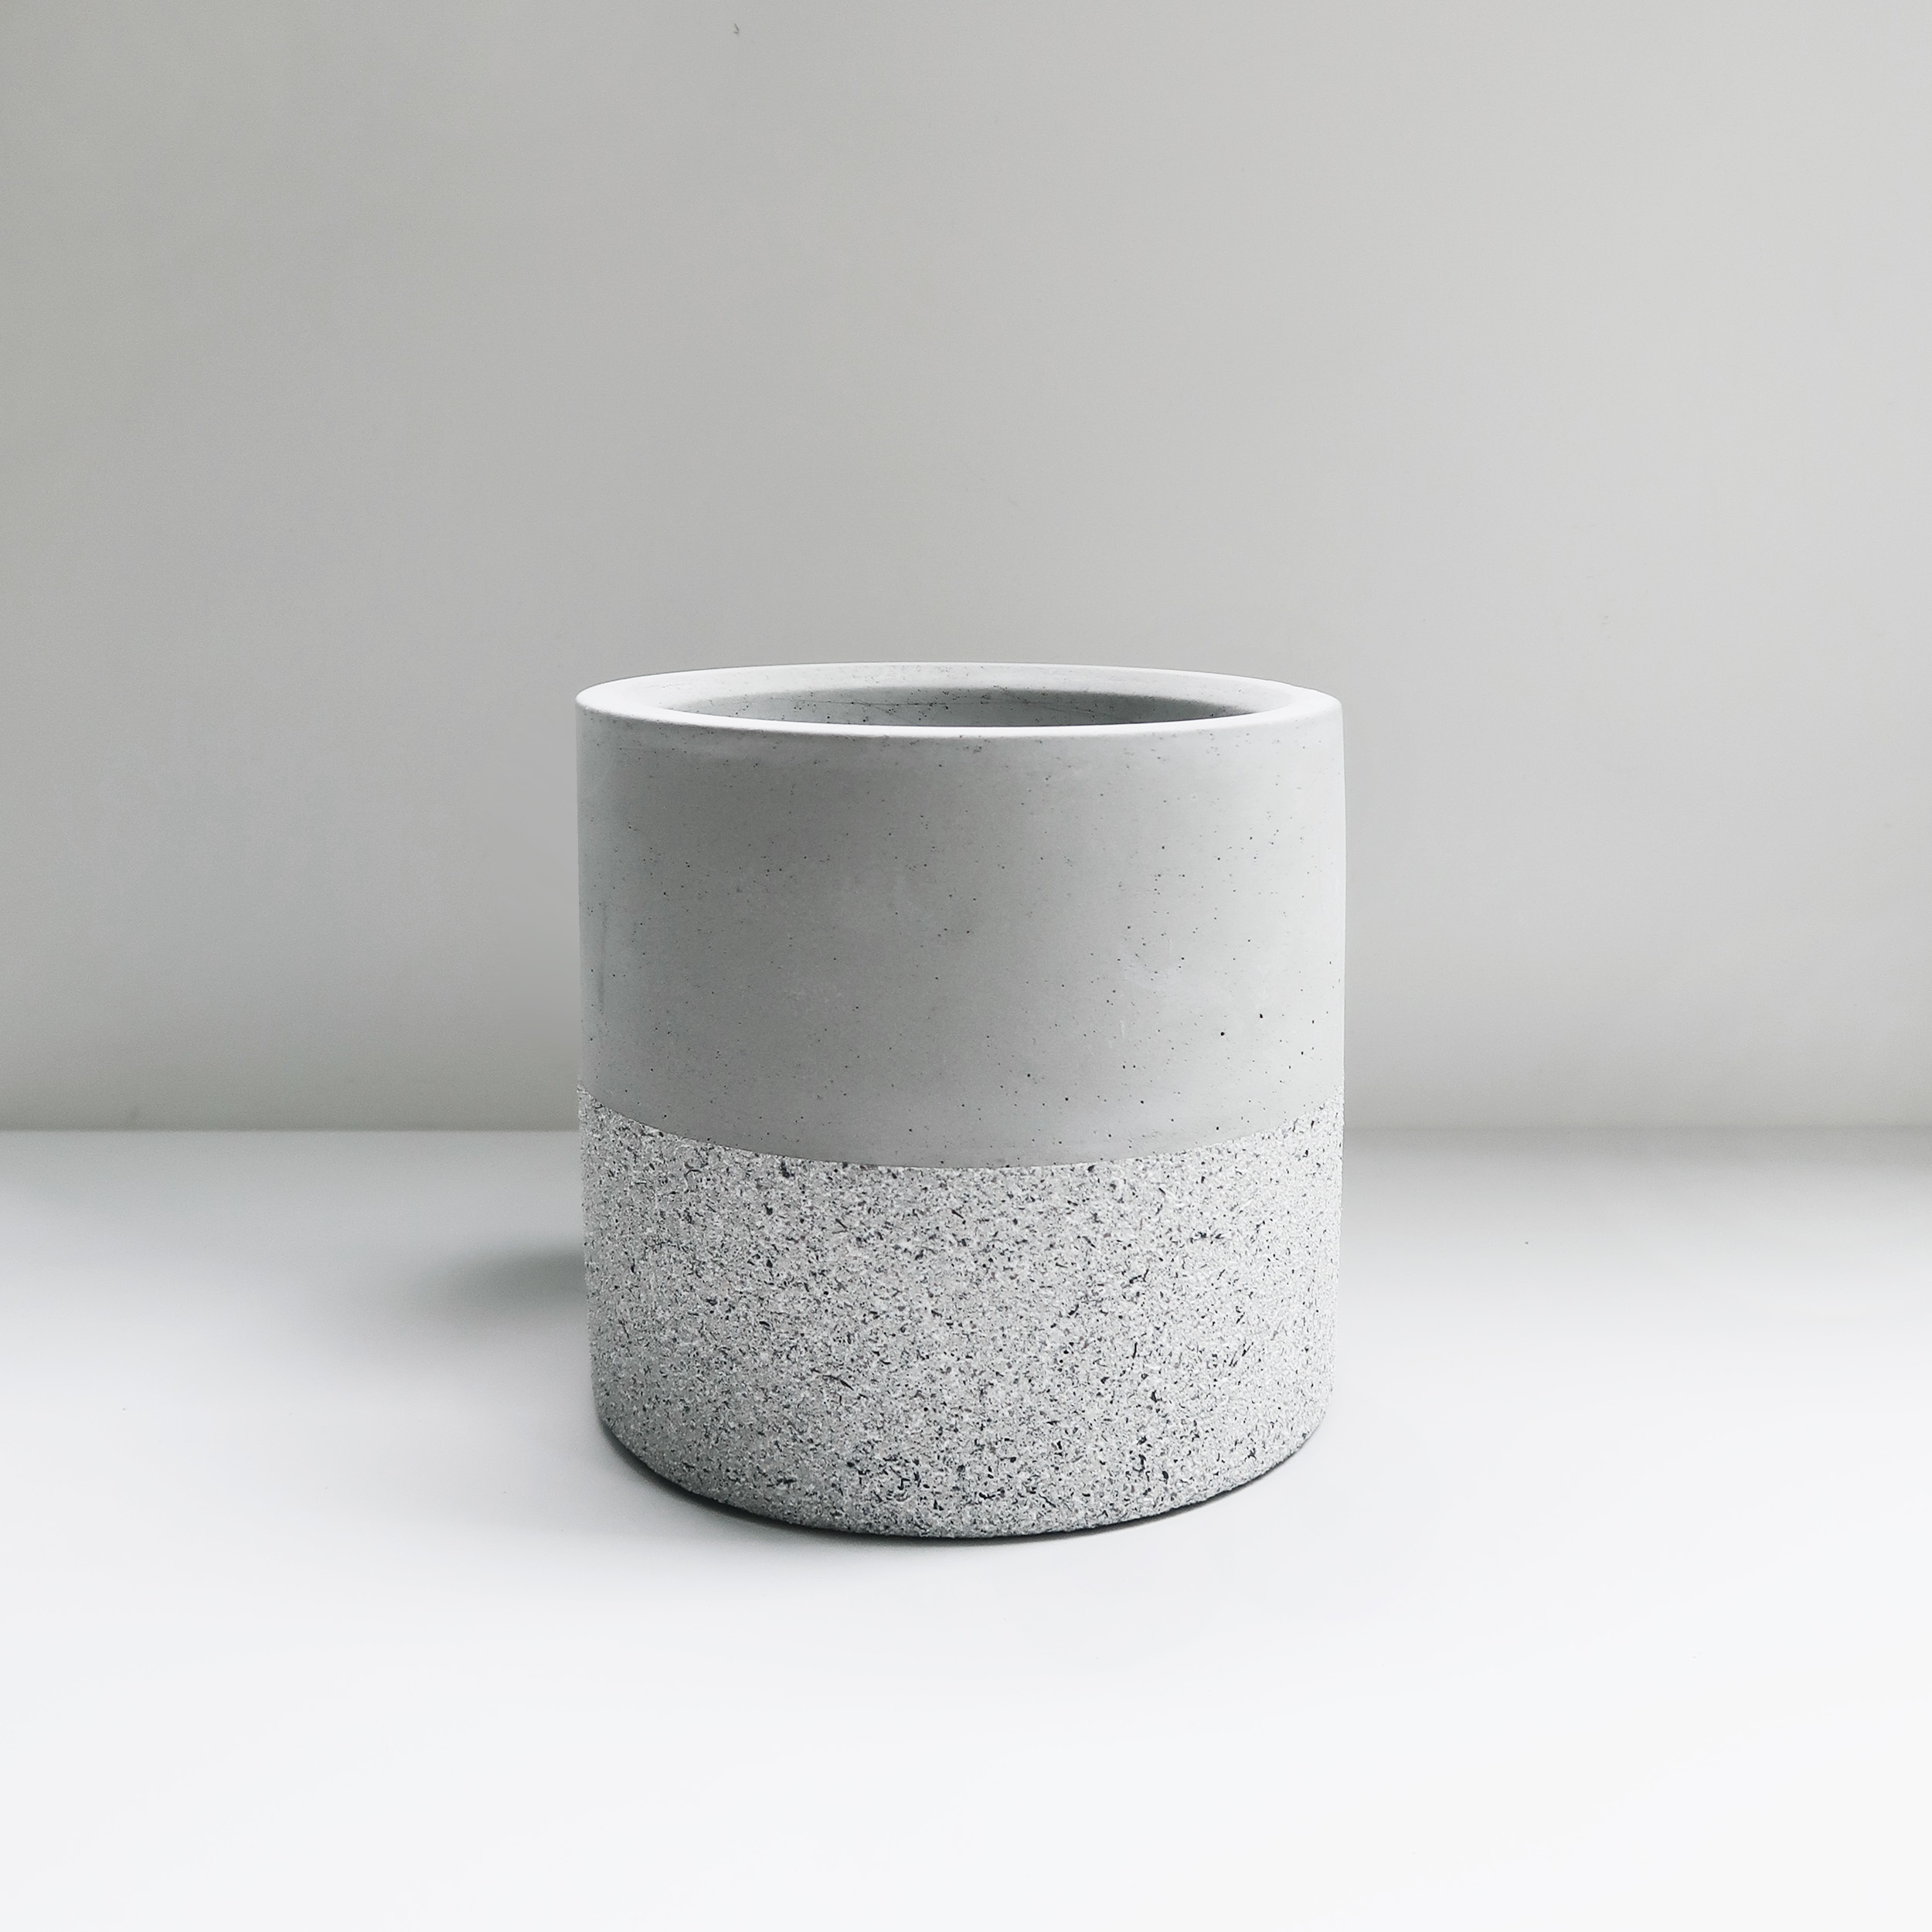 GRANITE 花崗岩雙色深圓水泥盆器 / Deep cylinder concrete pot